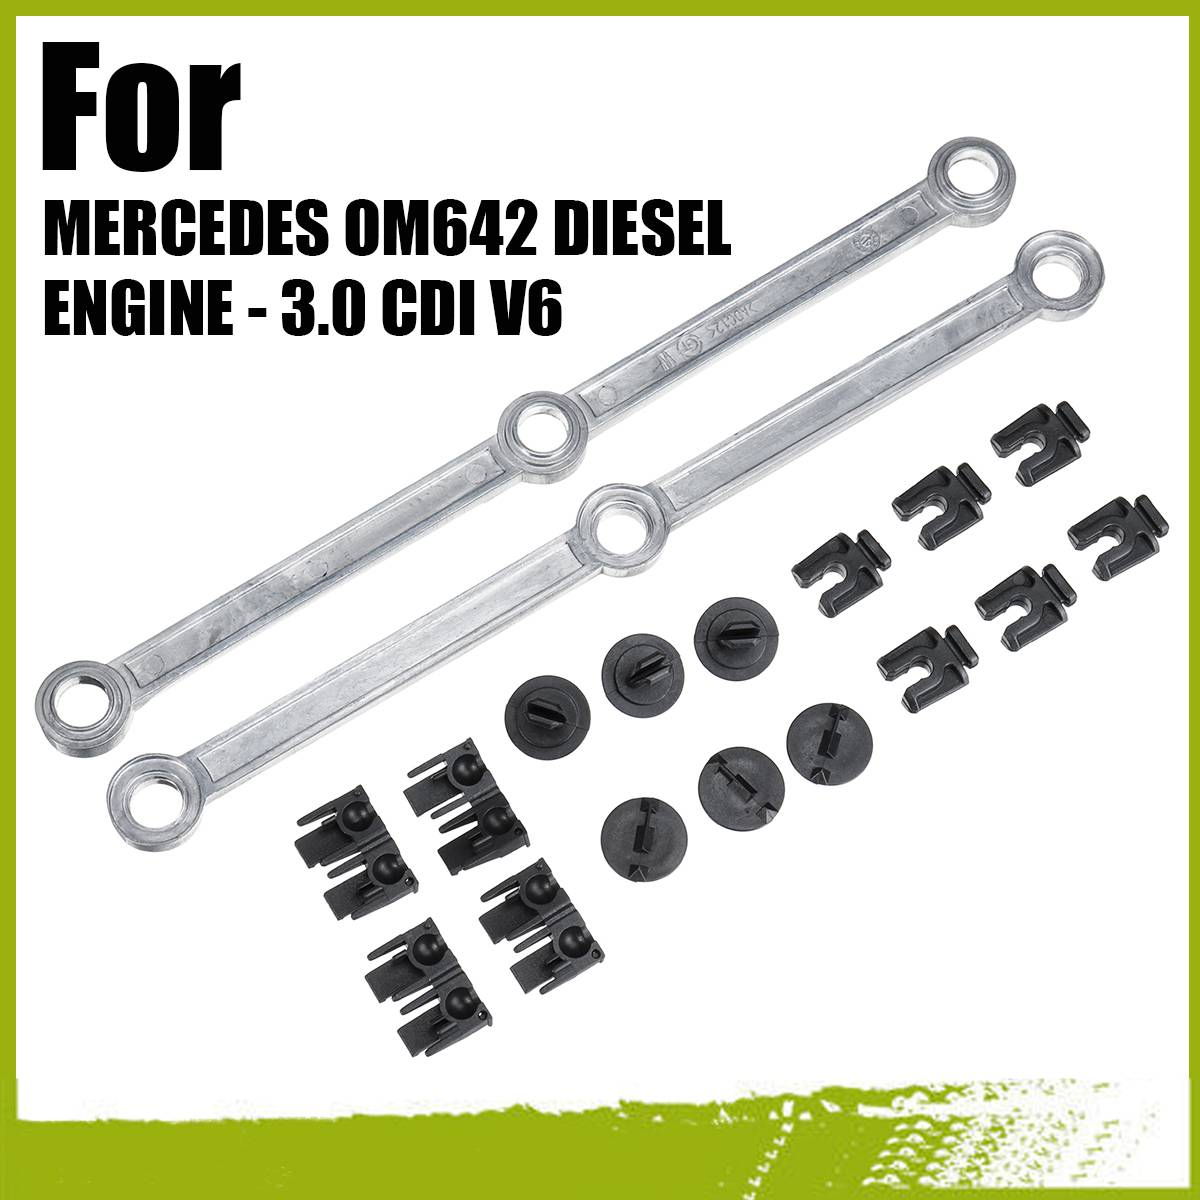 Intake Manifold Runner Connecting Rods For Mercedes OM642 V6 3.0 CDI W164 C219 Repair Tool Kit